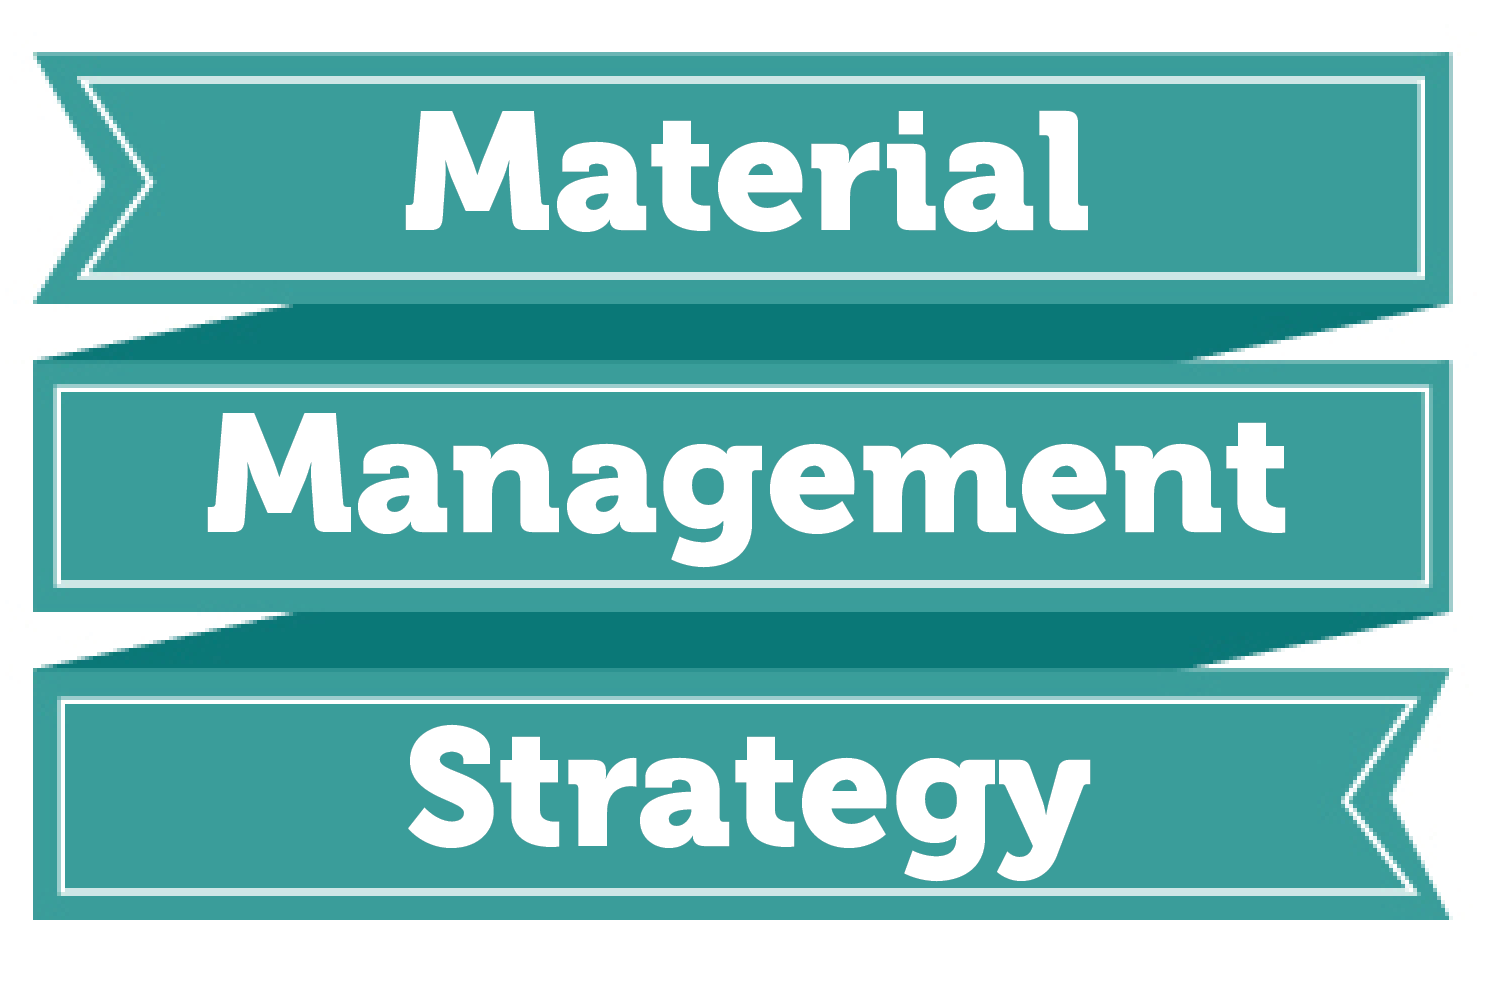 Material Management image.png